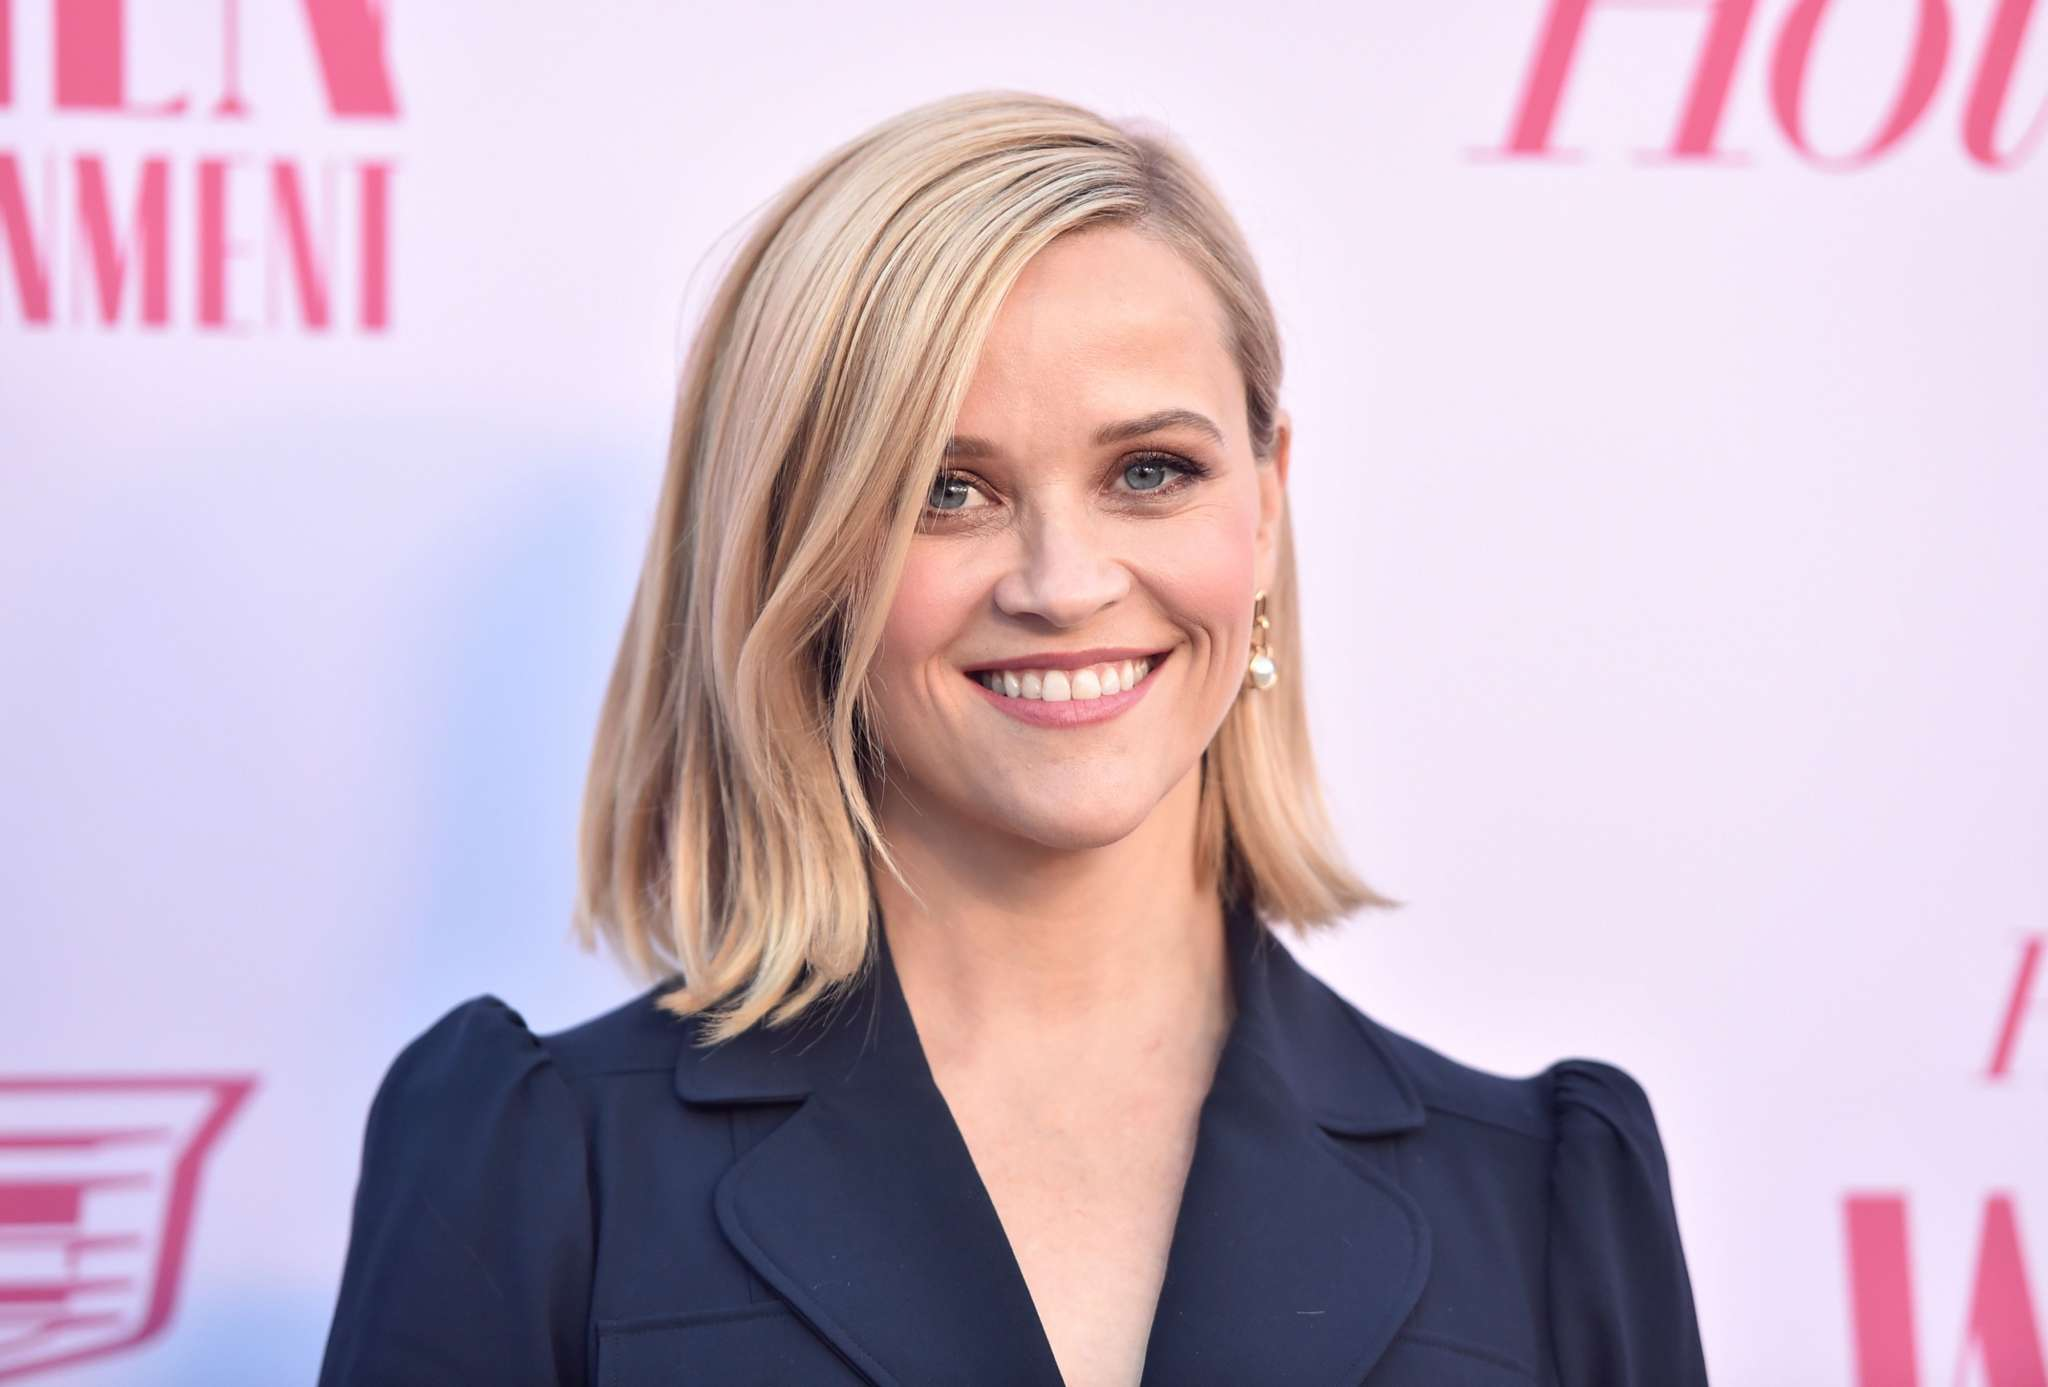 """reese-witherspoon-reveals-plans-to-run-for-president-in-the-future-heres-why-shes-not-ruling-out-a-career-in-politics"""